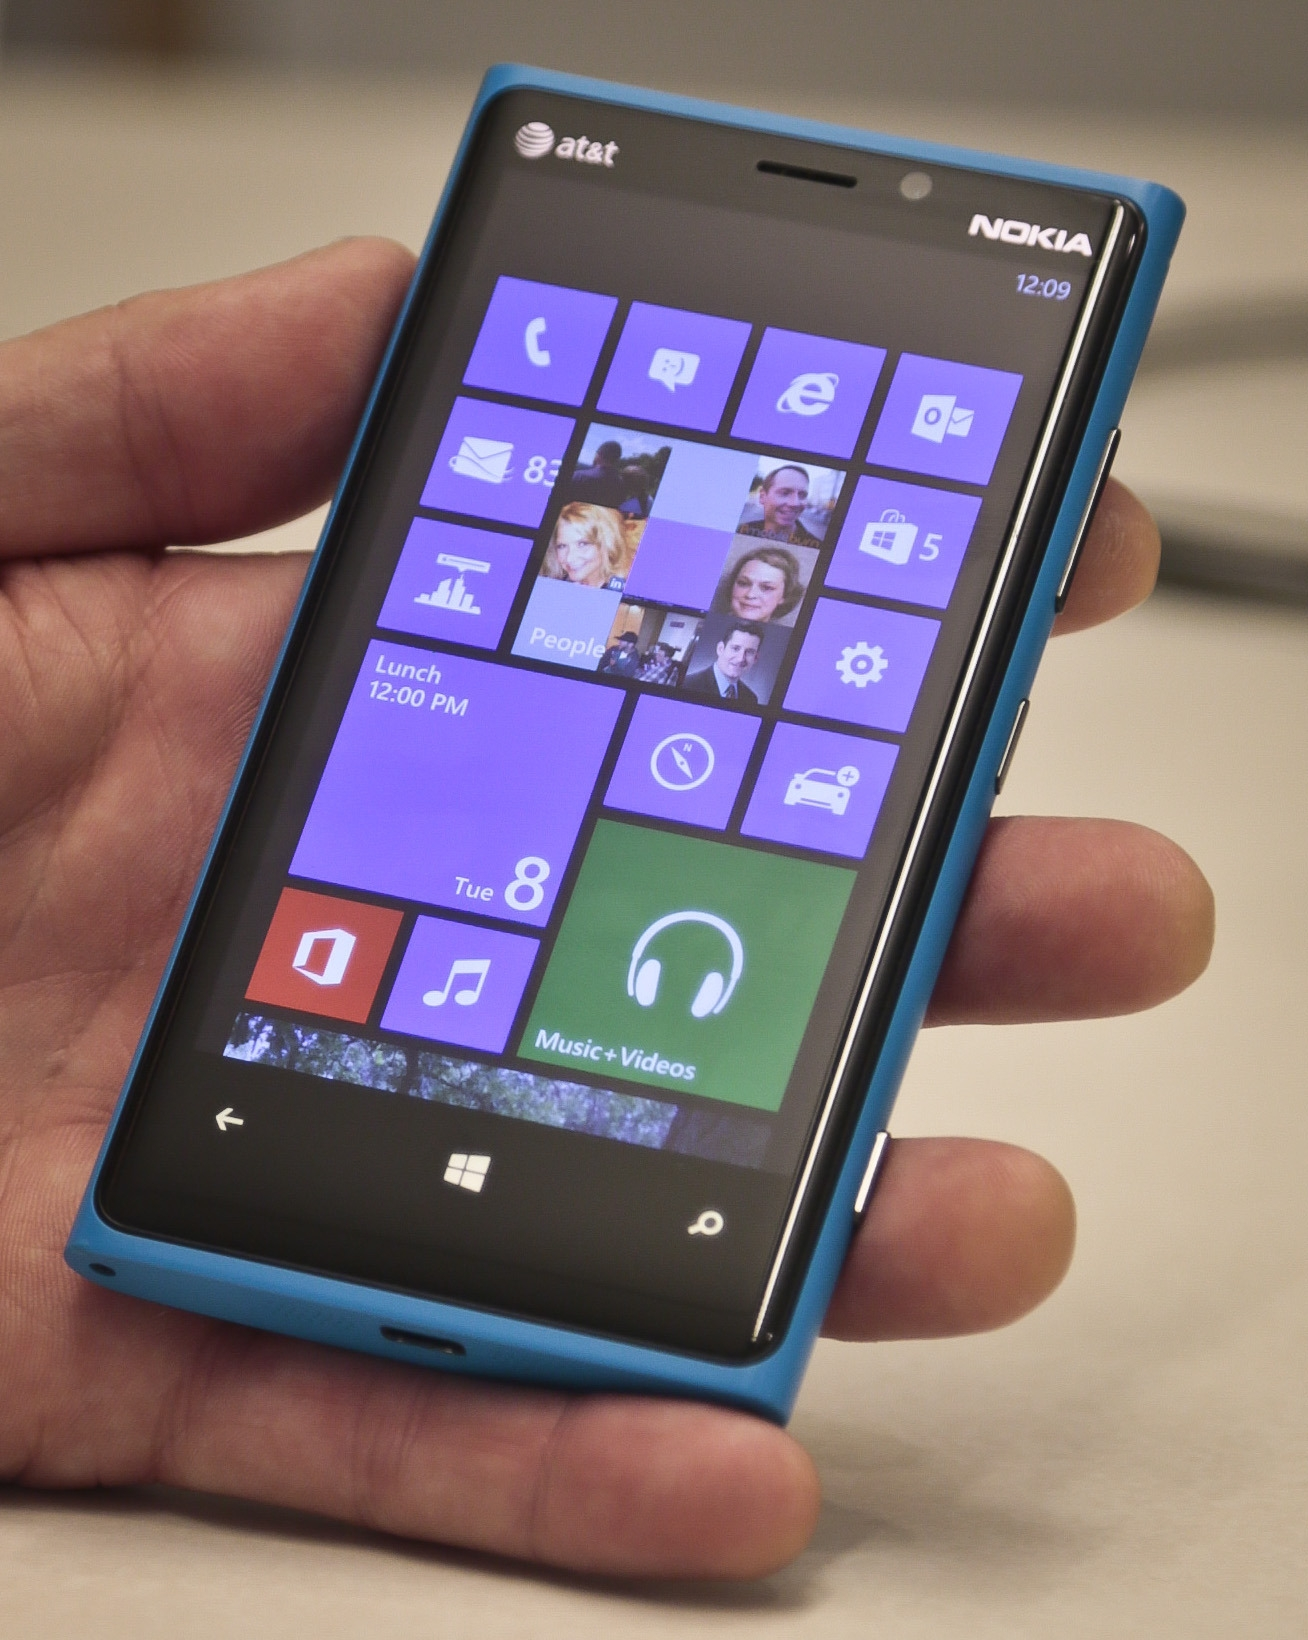 A Nokia cellphone, loaded with Microsoft Windows' new software, is shown.